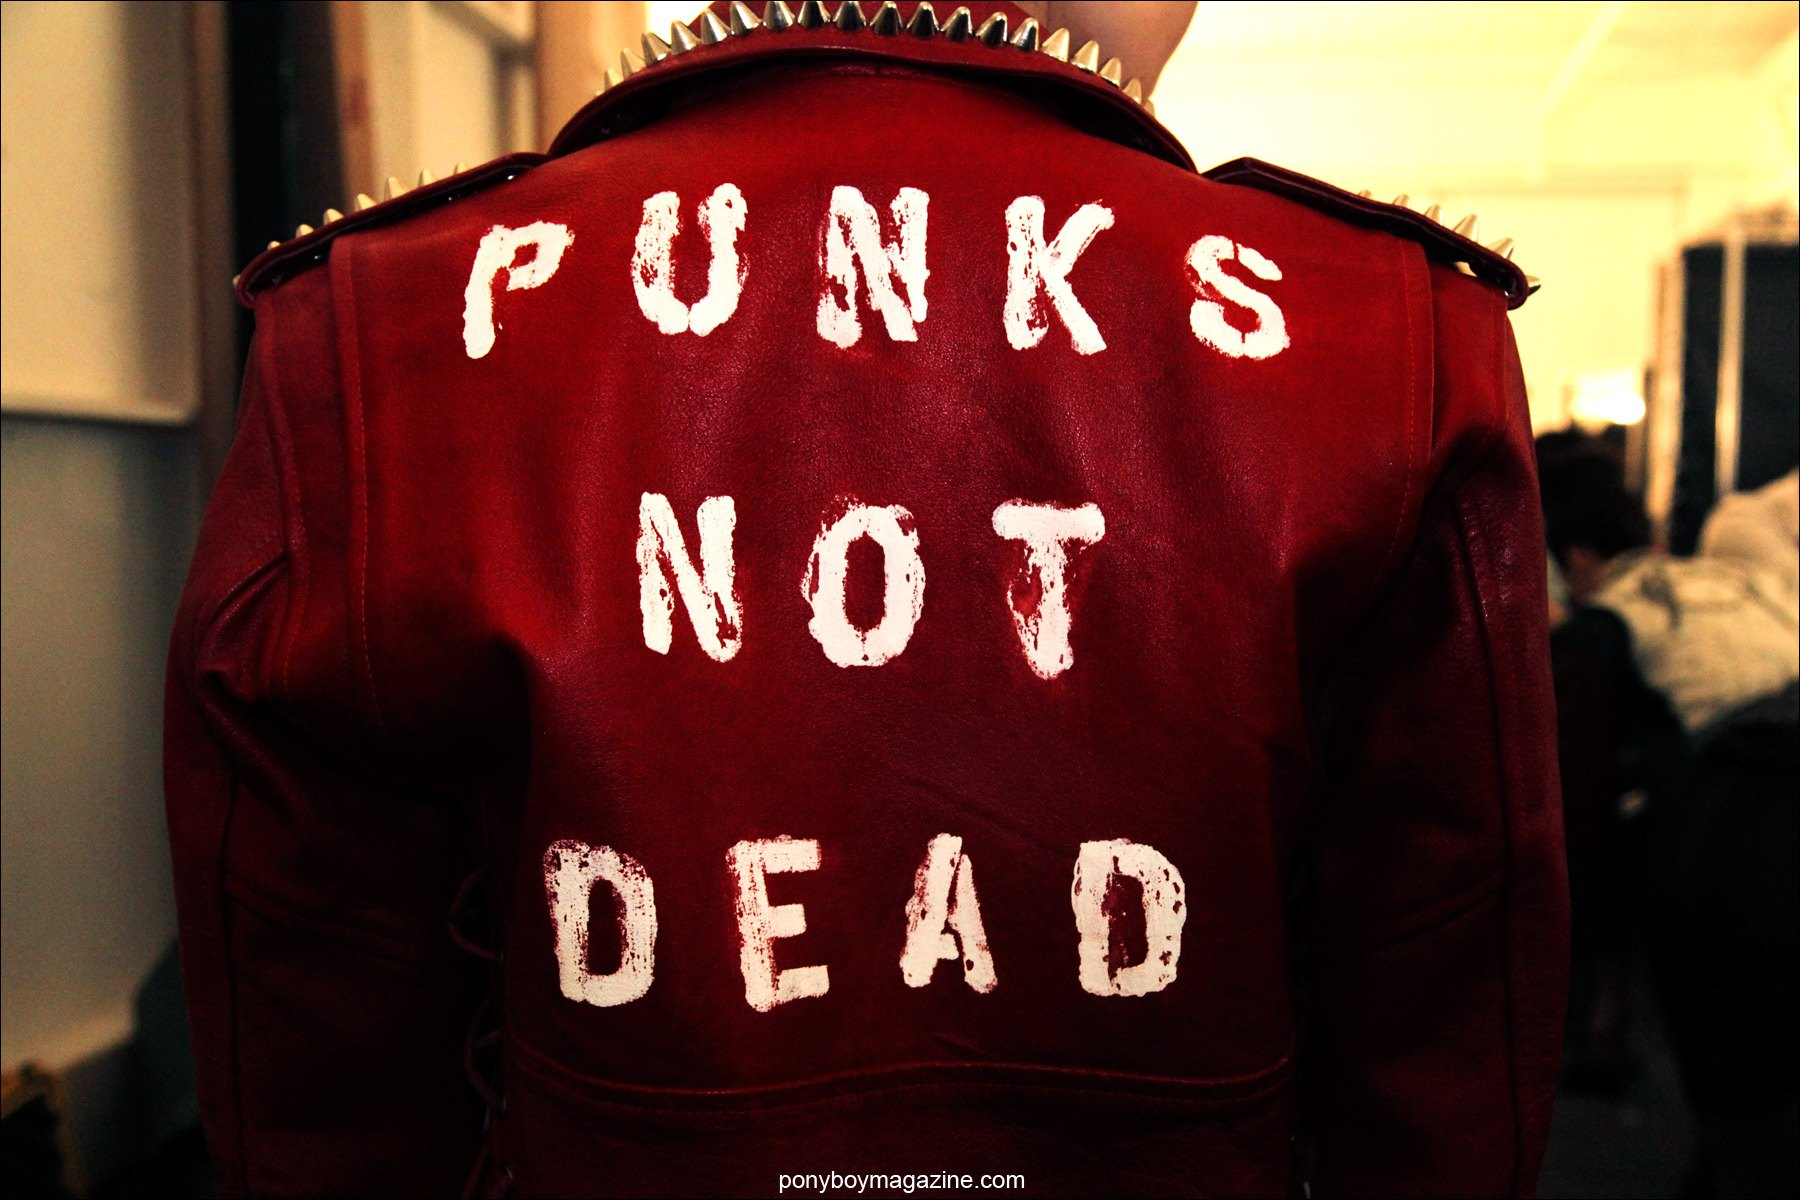 Punks Not Dead, back of a custom leather jacket by designer Christian Benner, for his A/W 2014 Collection at Pier 59 Studios in New York City. Photographed for Ponyboy Magazine by Alexander Thompson.